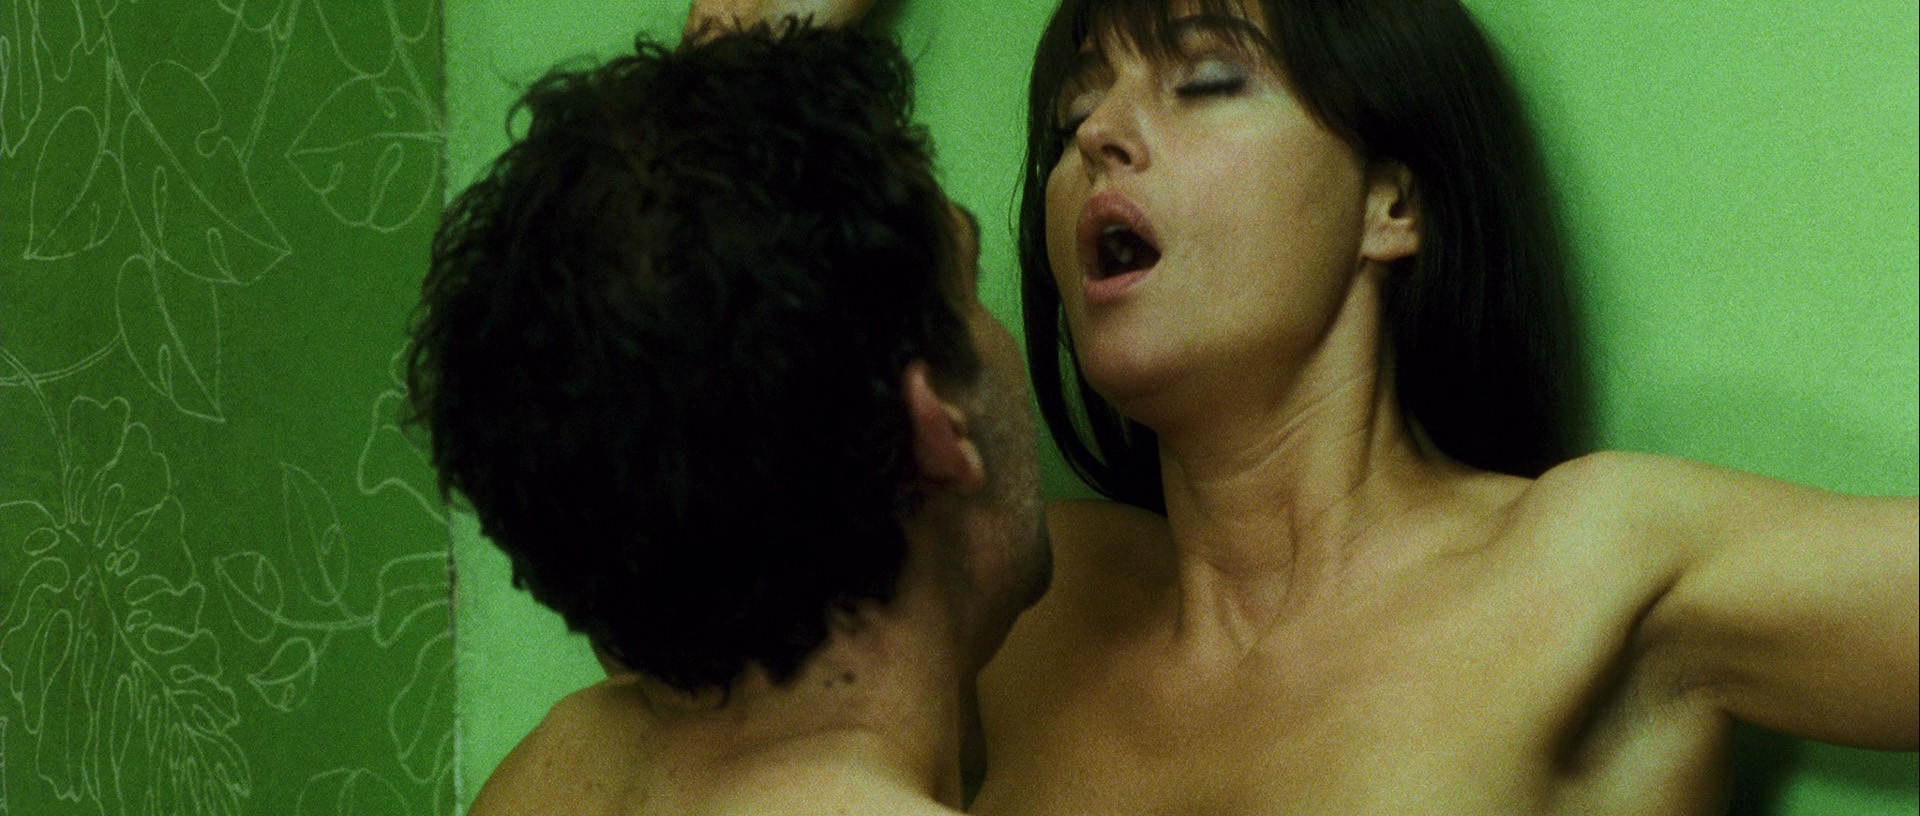 Monica bellucci shoot em up sex scene